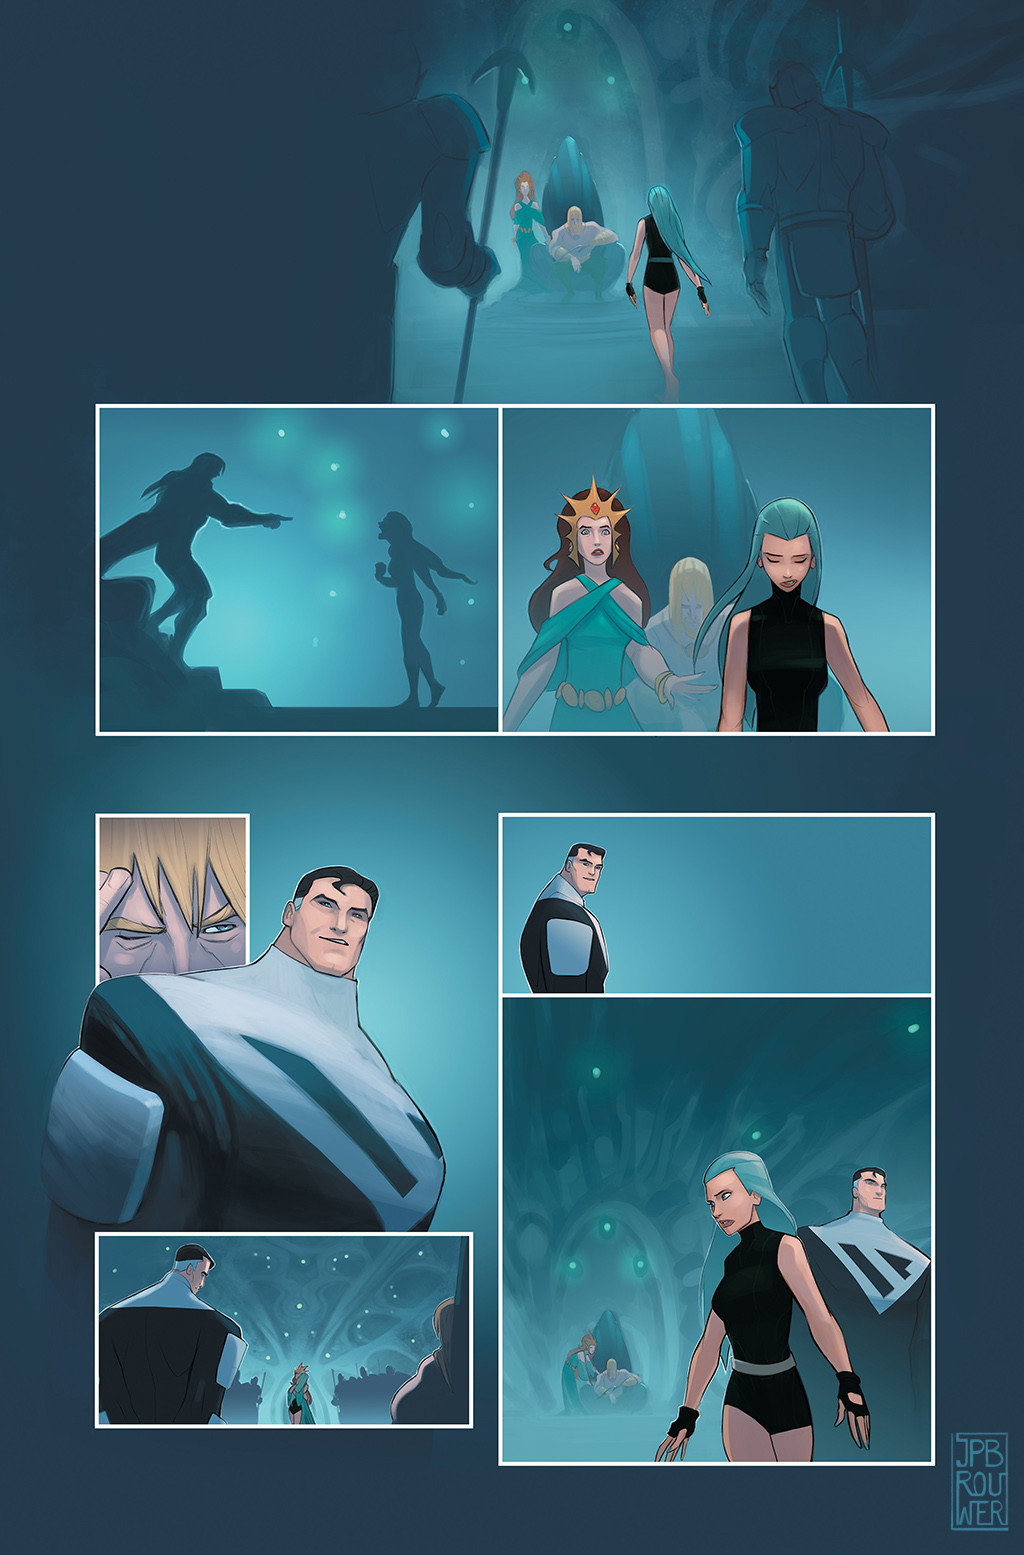 James brouwer jamesbrouwer beyondorigins aquagirl pg10